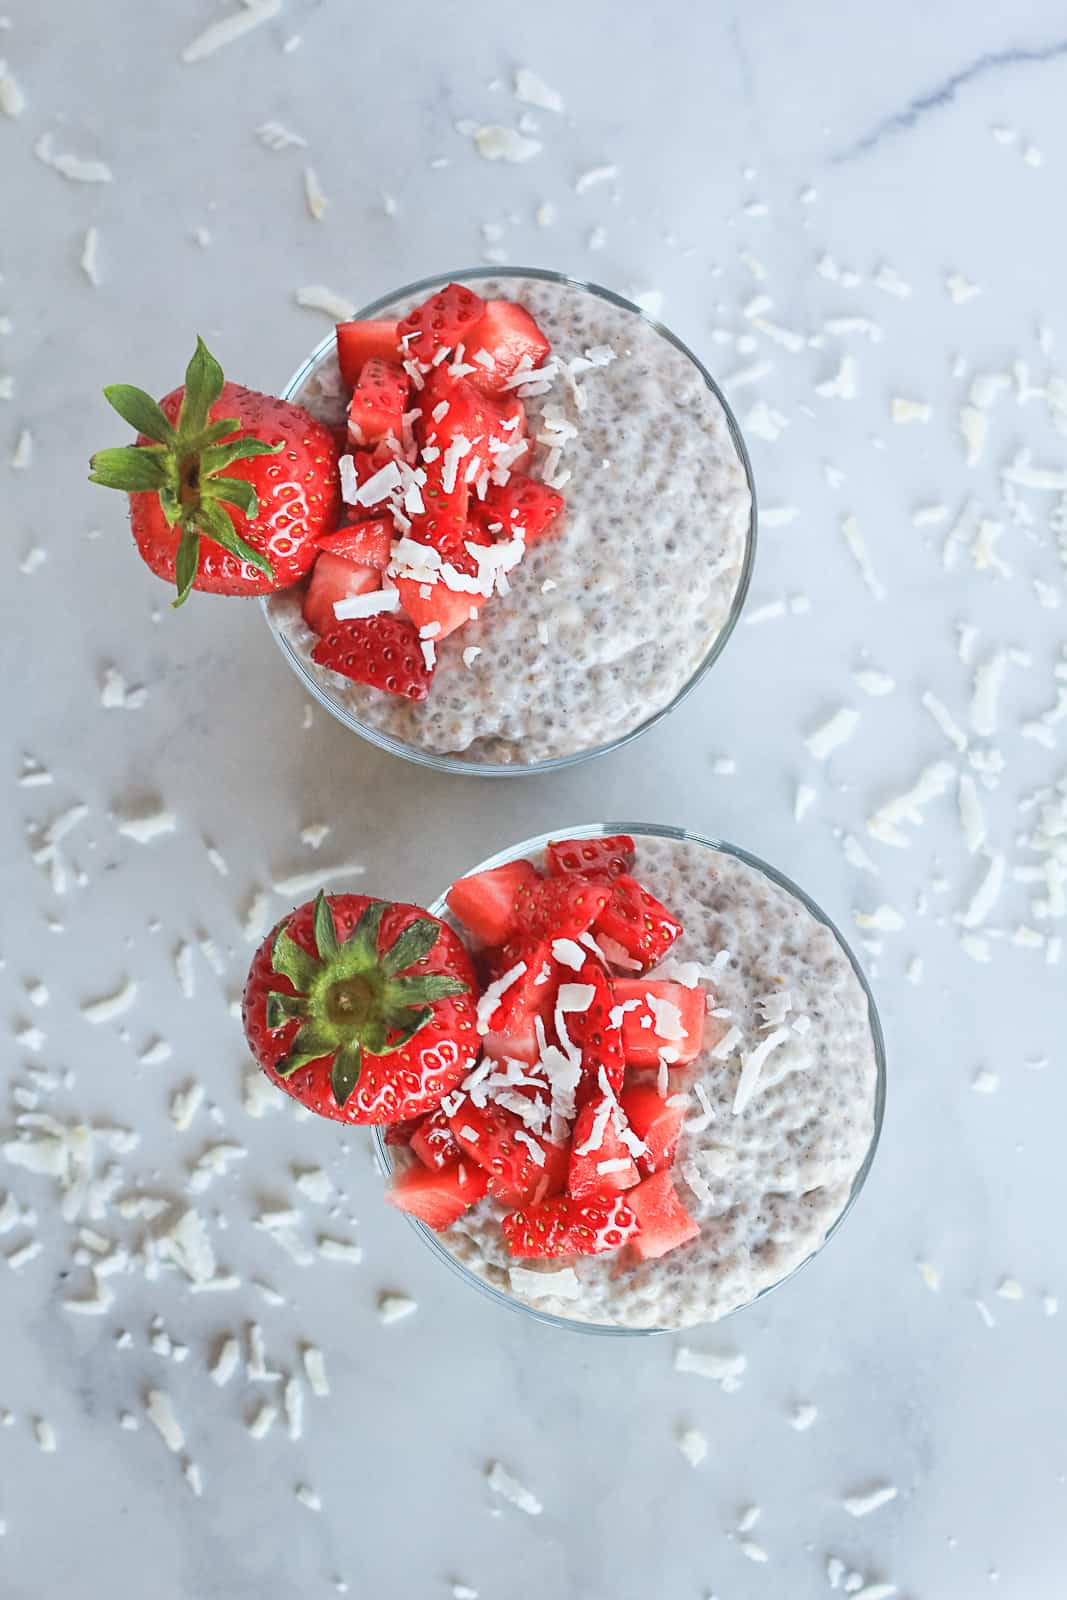 Top view of two jars with chia seed pudding, strawberries and coconut flakes.